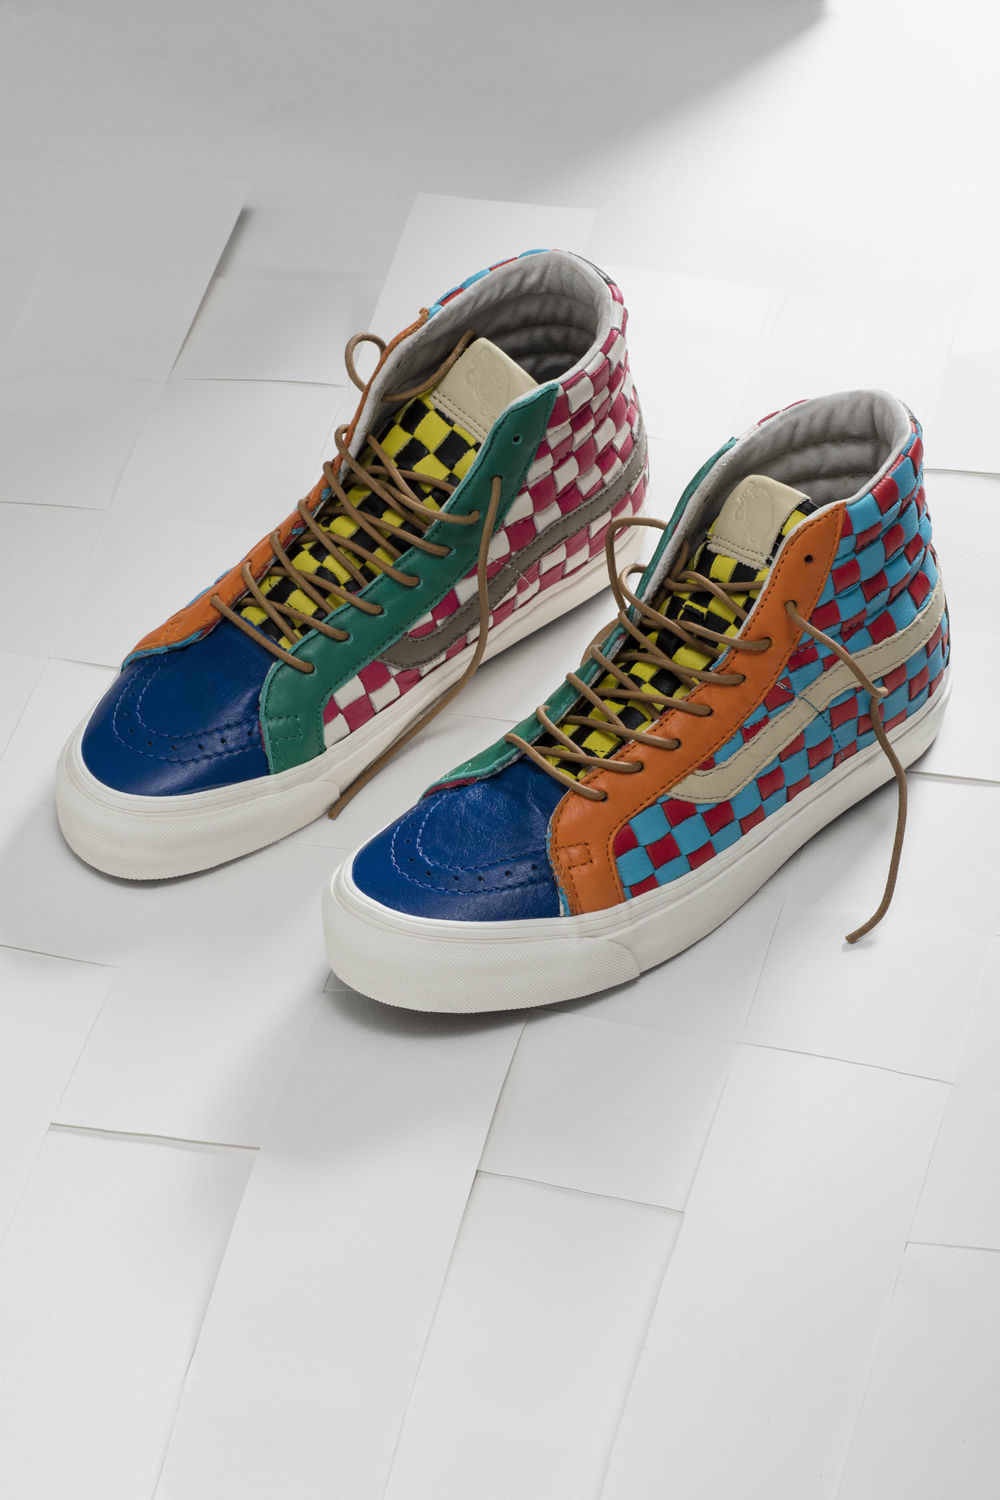 SP16_Vault_WovenCheckerboard_RedandBlue_Sk8hi_Product_0138_w1